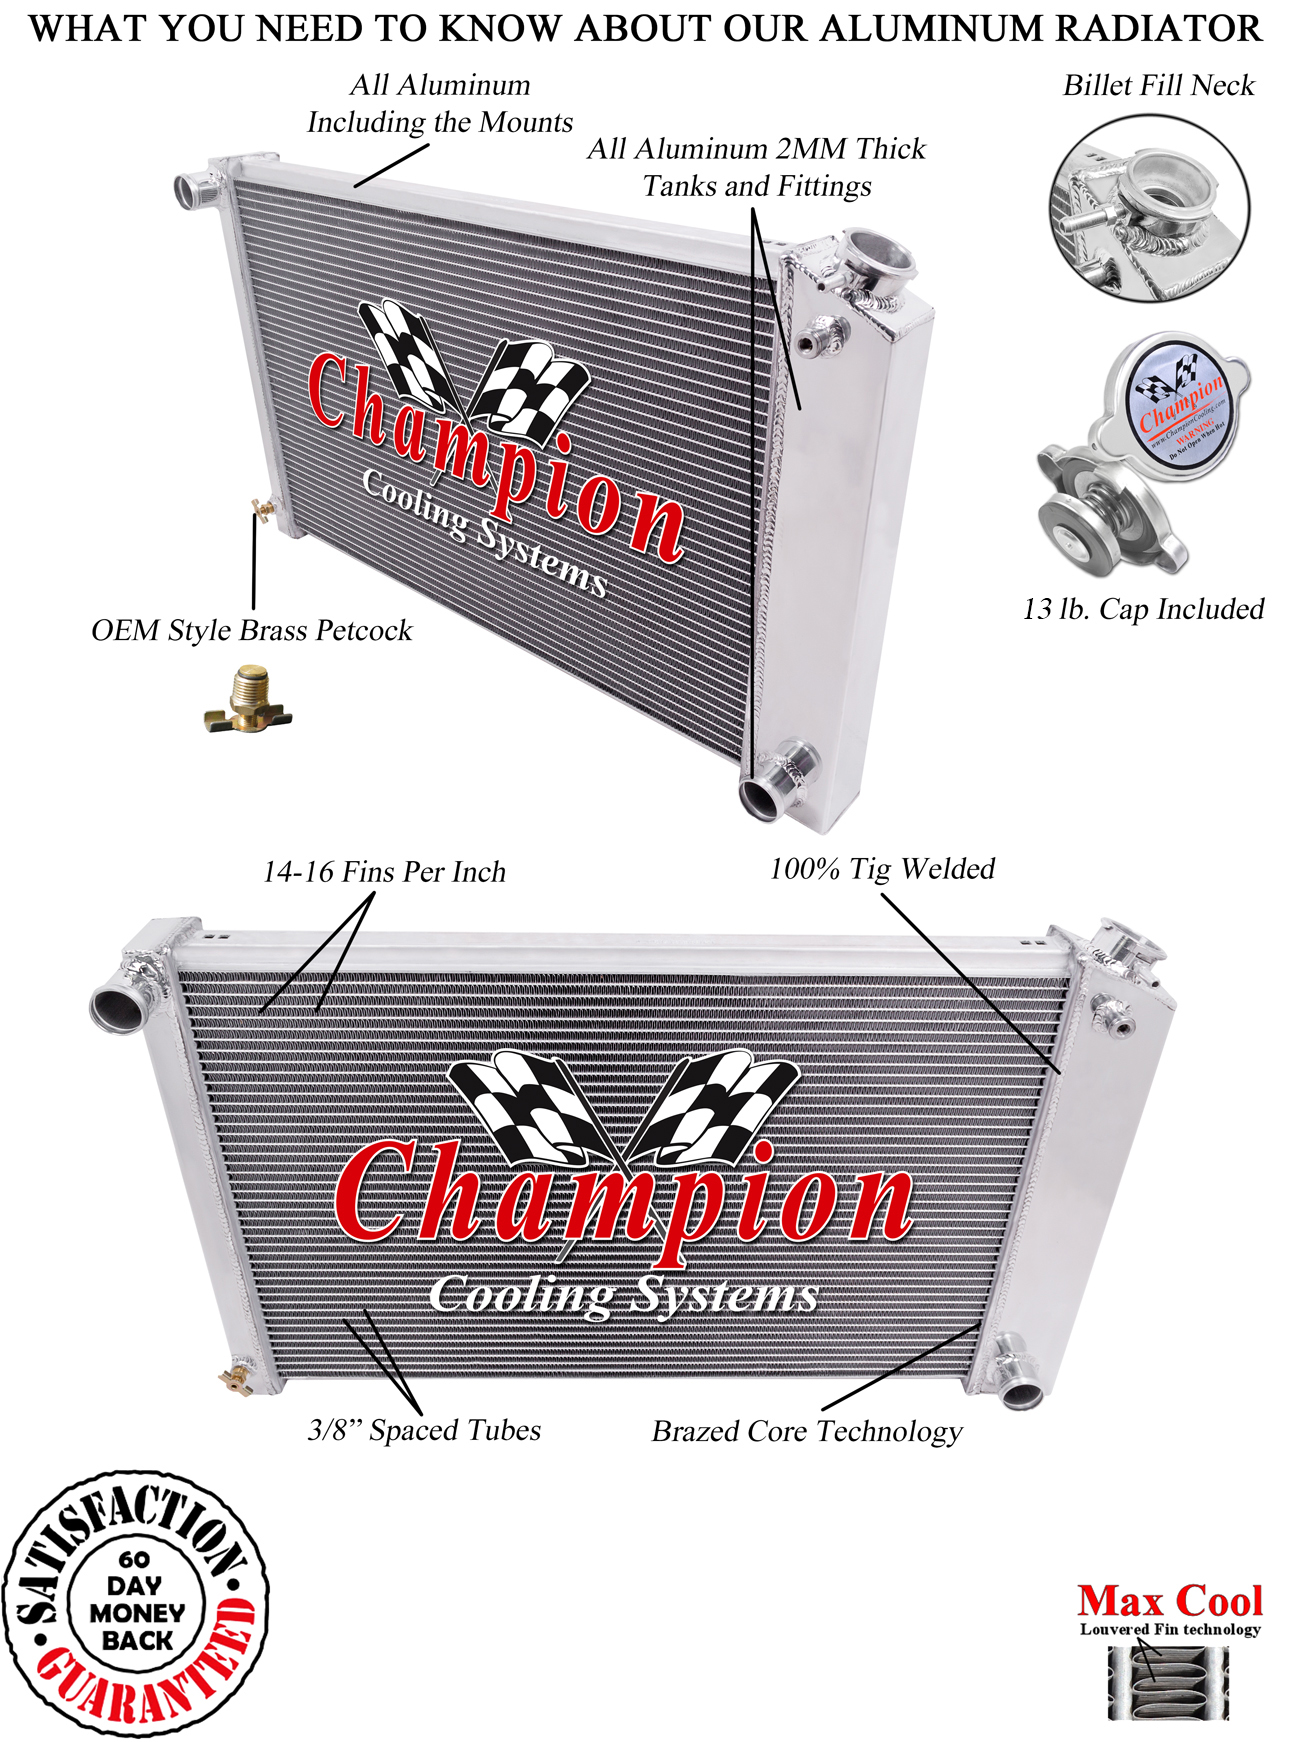 https://www.championcooling.com/photos/Photos%20White/Without%20Fans/162-m/162-m_d_w.jpg